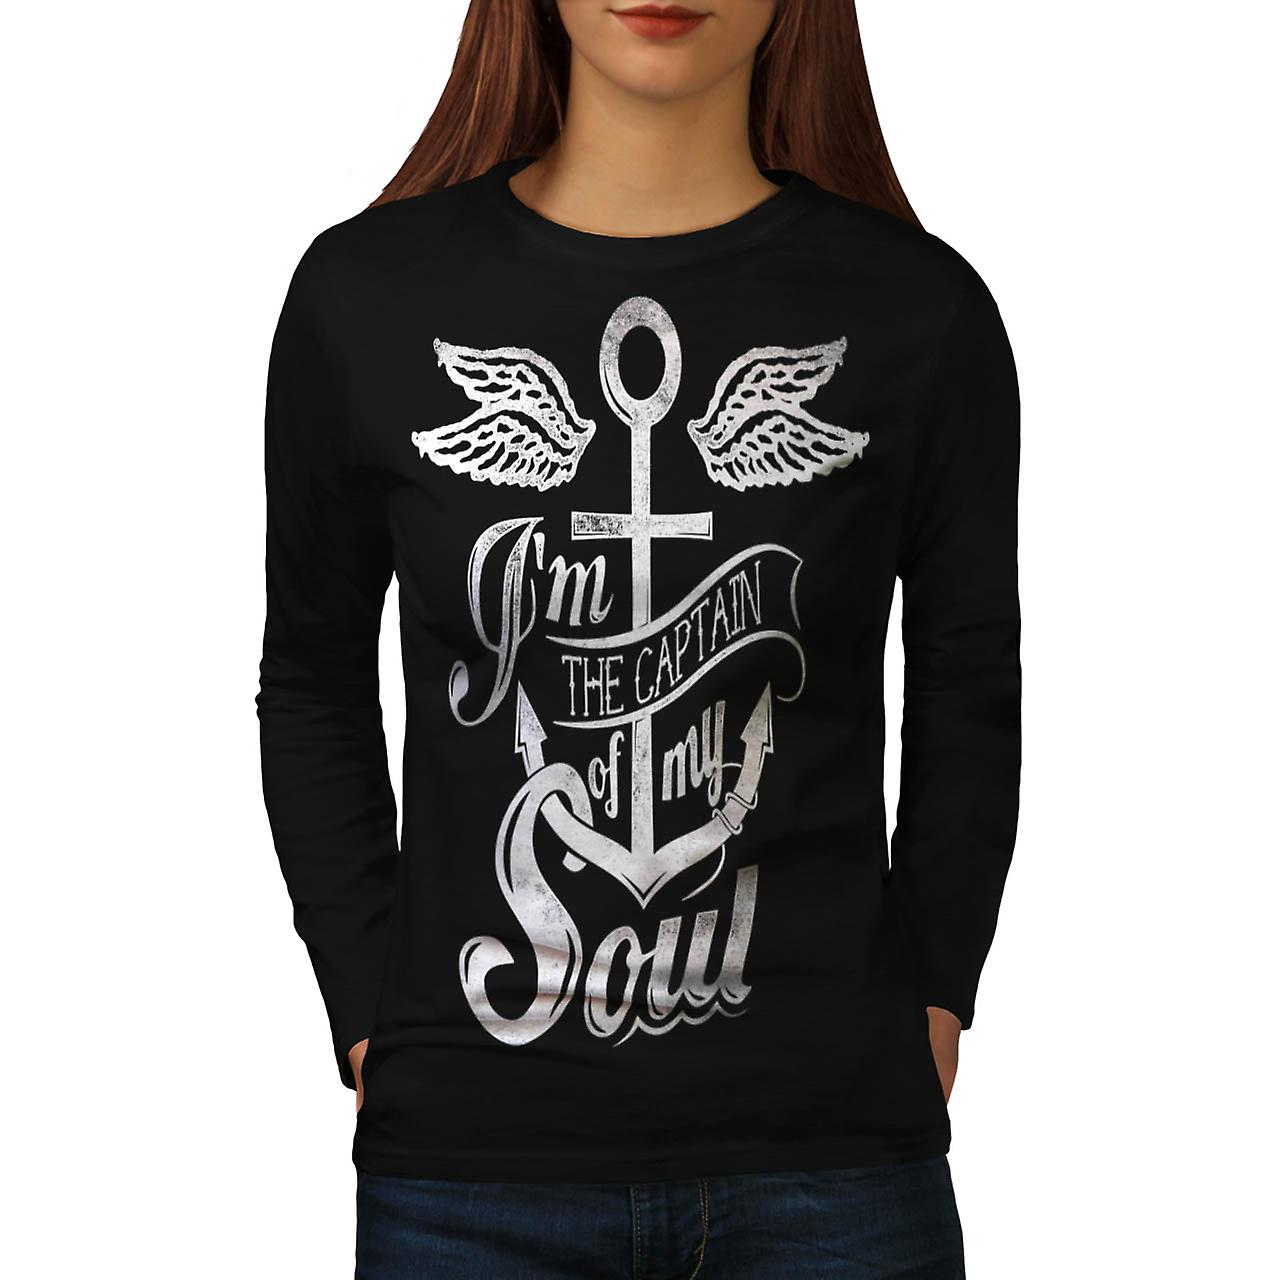 Captain Of My Soul Boat Cruise Women Black Long Sleeve T-shirt | Wellcoda